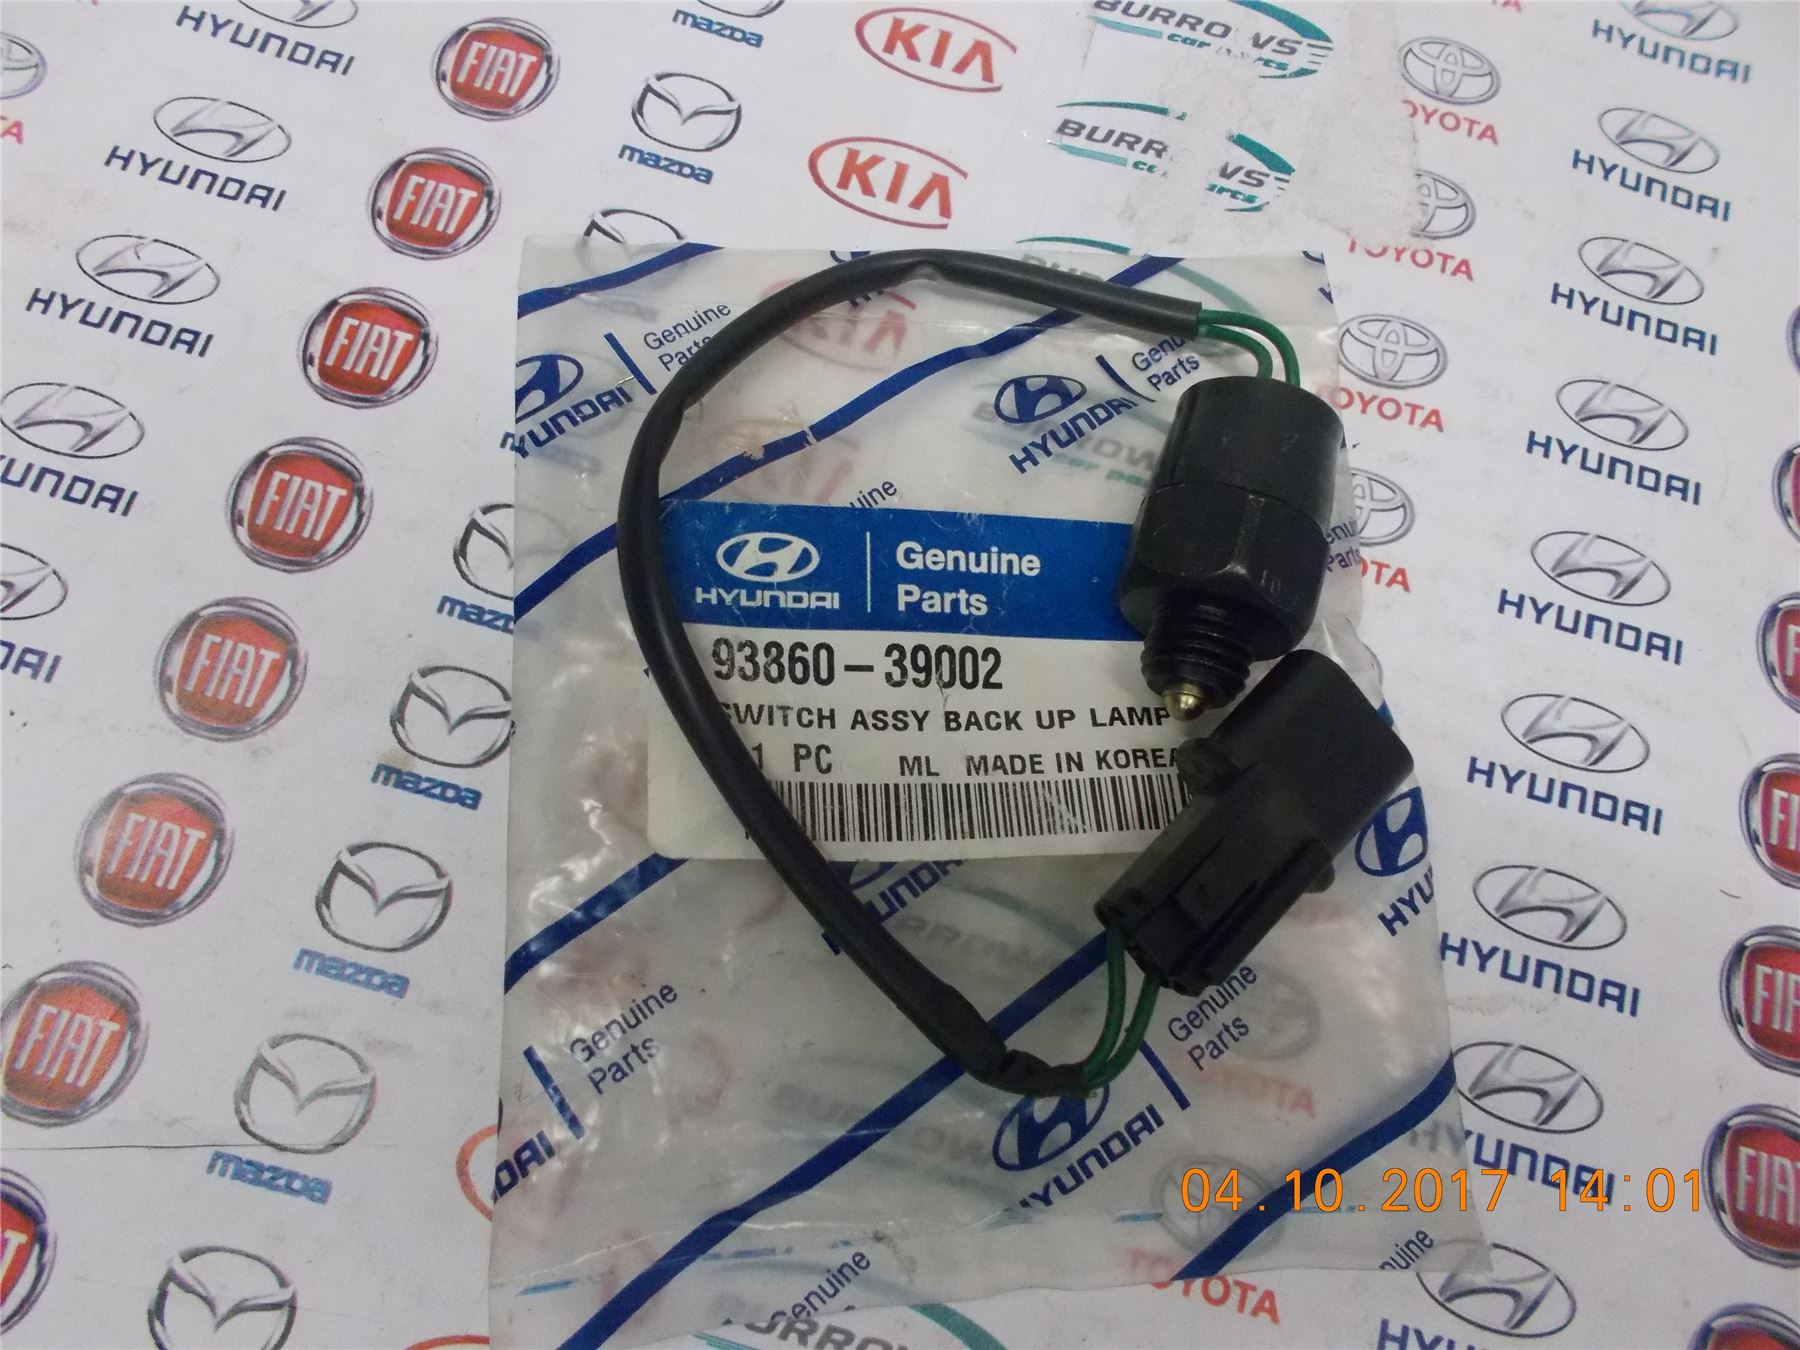 Genuine Hyundai Elantra/Lantra 2000 On Back Up Lamp Switch - 9386039002